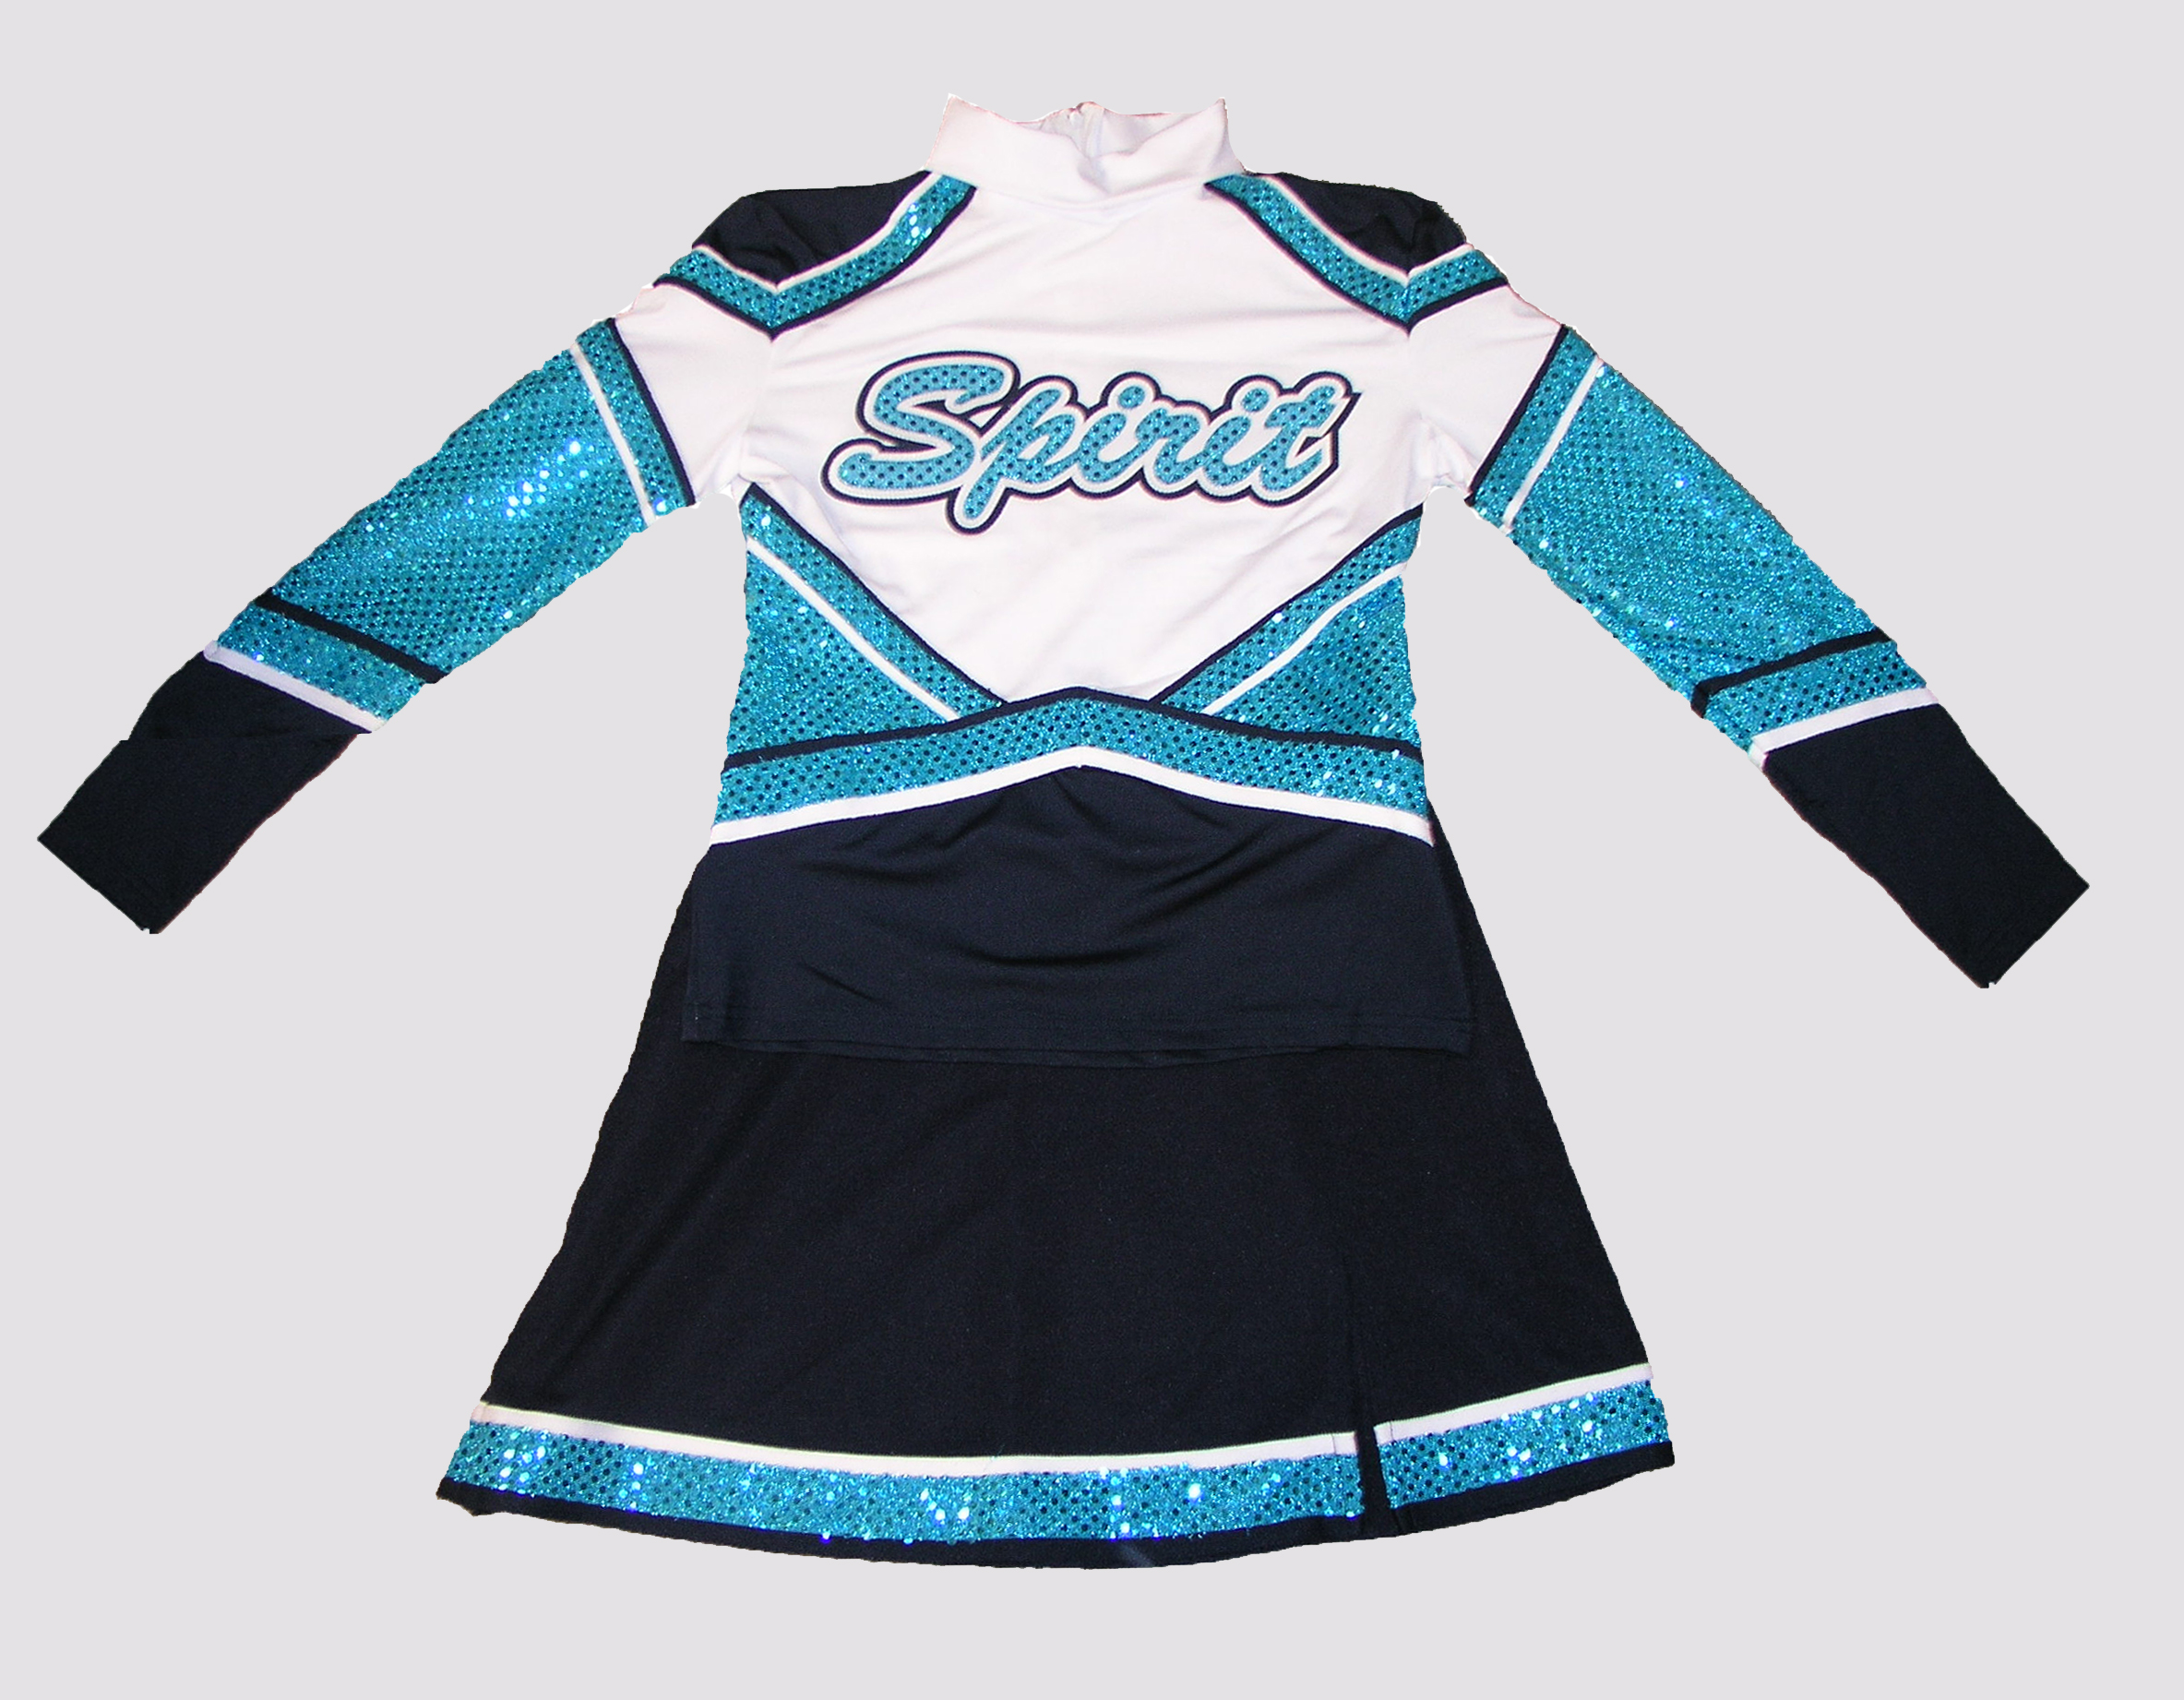 e31e41839d4 Gorgeous Custom Cheerleading Uniforms at the Best Prices!